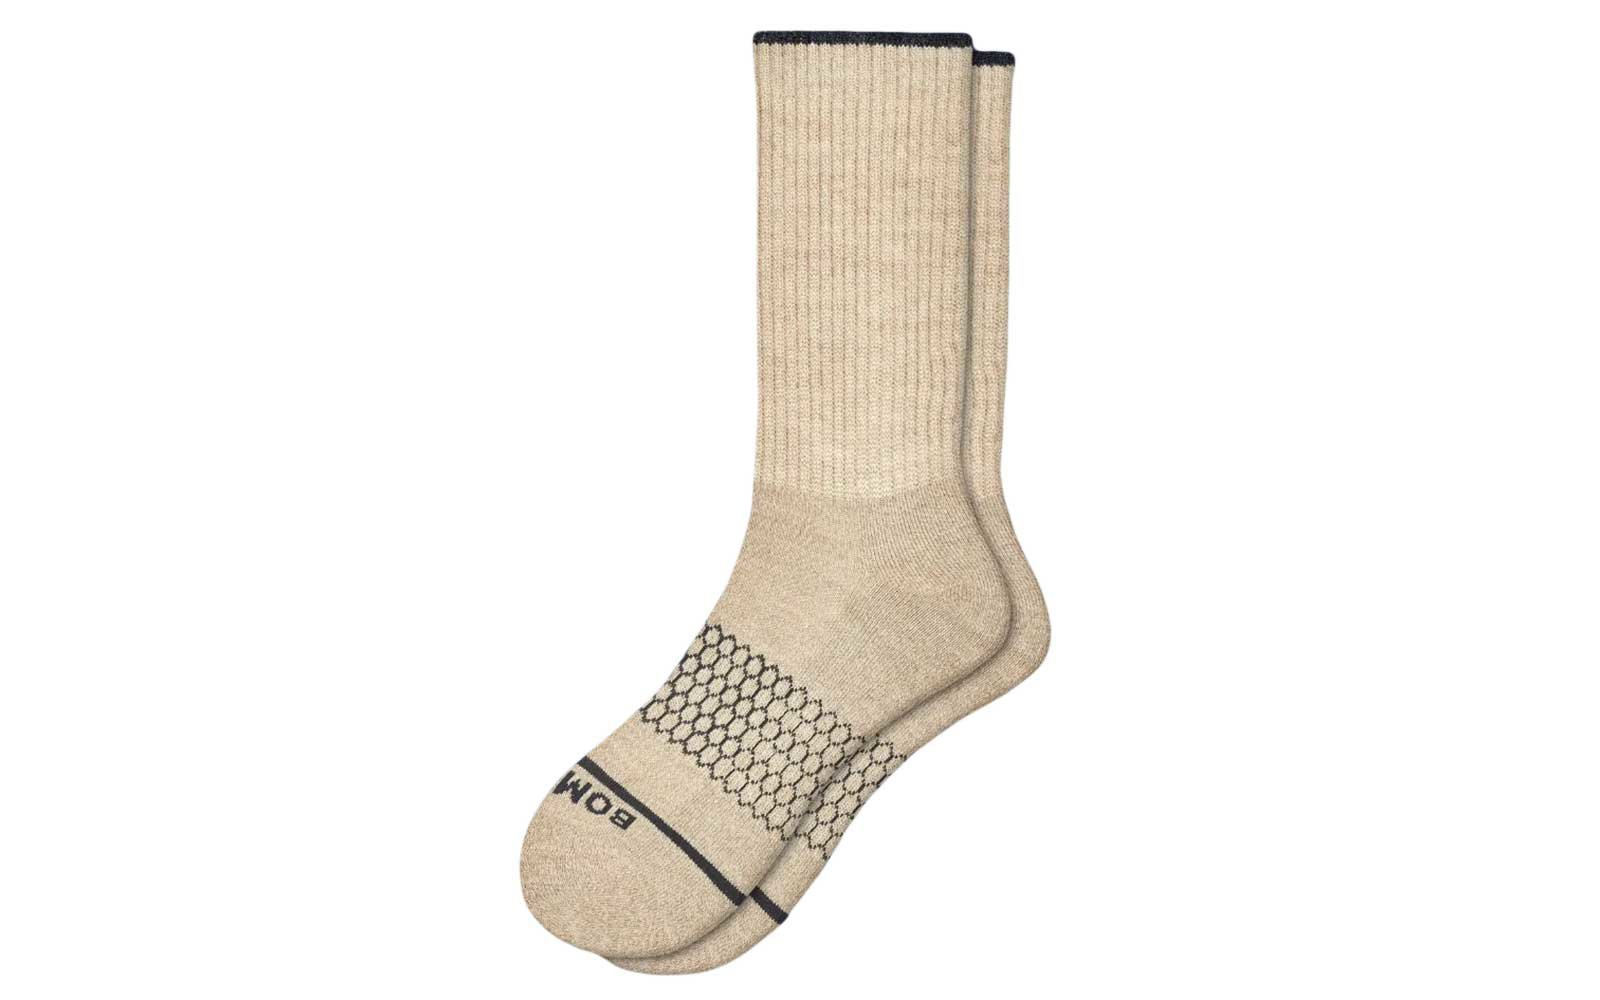 Best Socks for Staying Up: Bombas Merino Wool Calf Socks